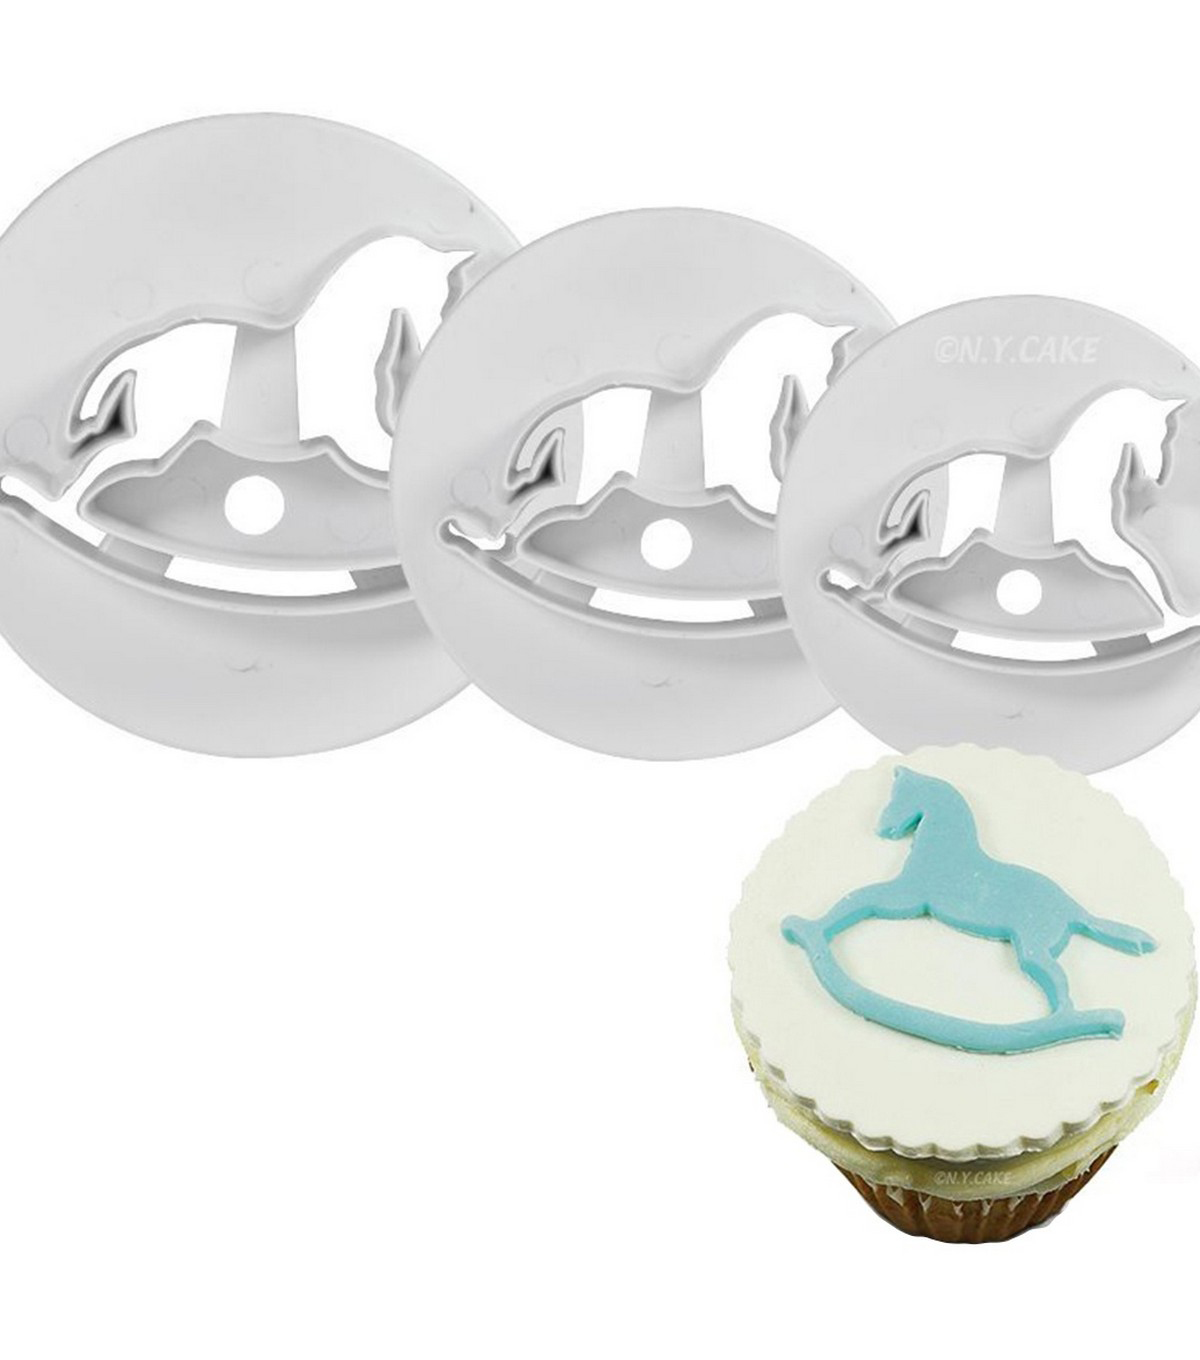 NY Cake 3 pk Plunger Cutters-Rocking Horse